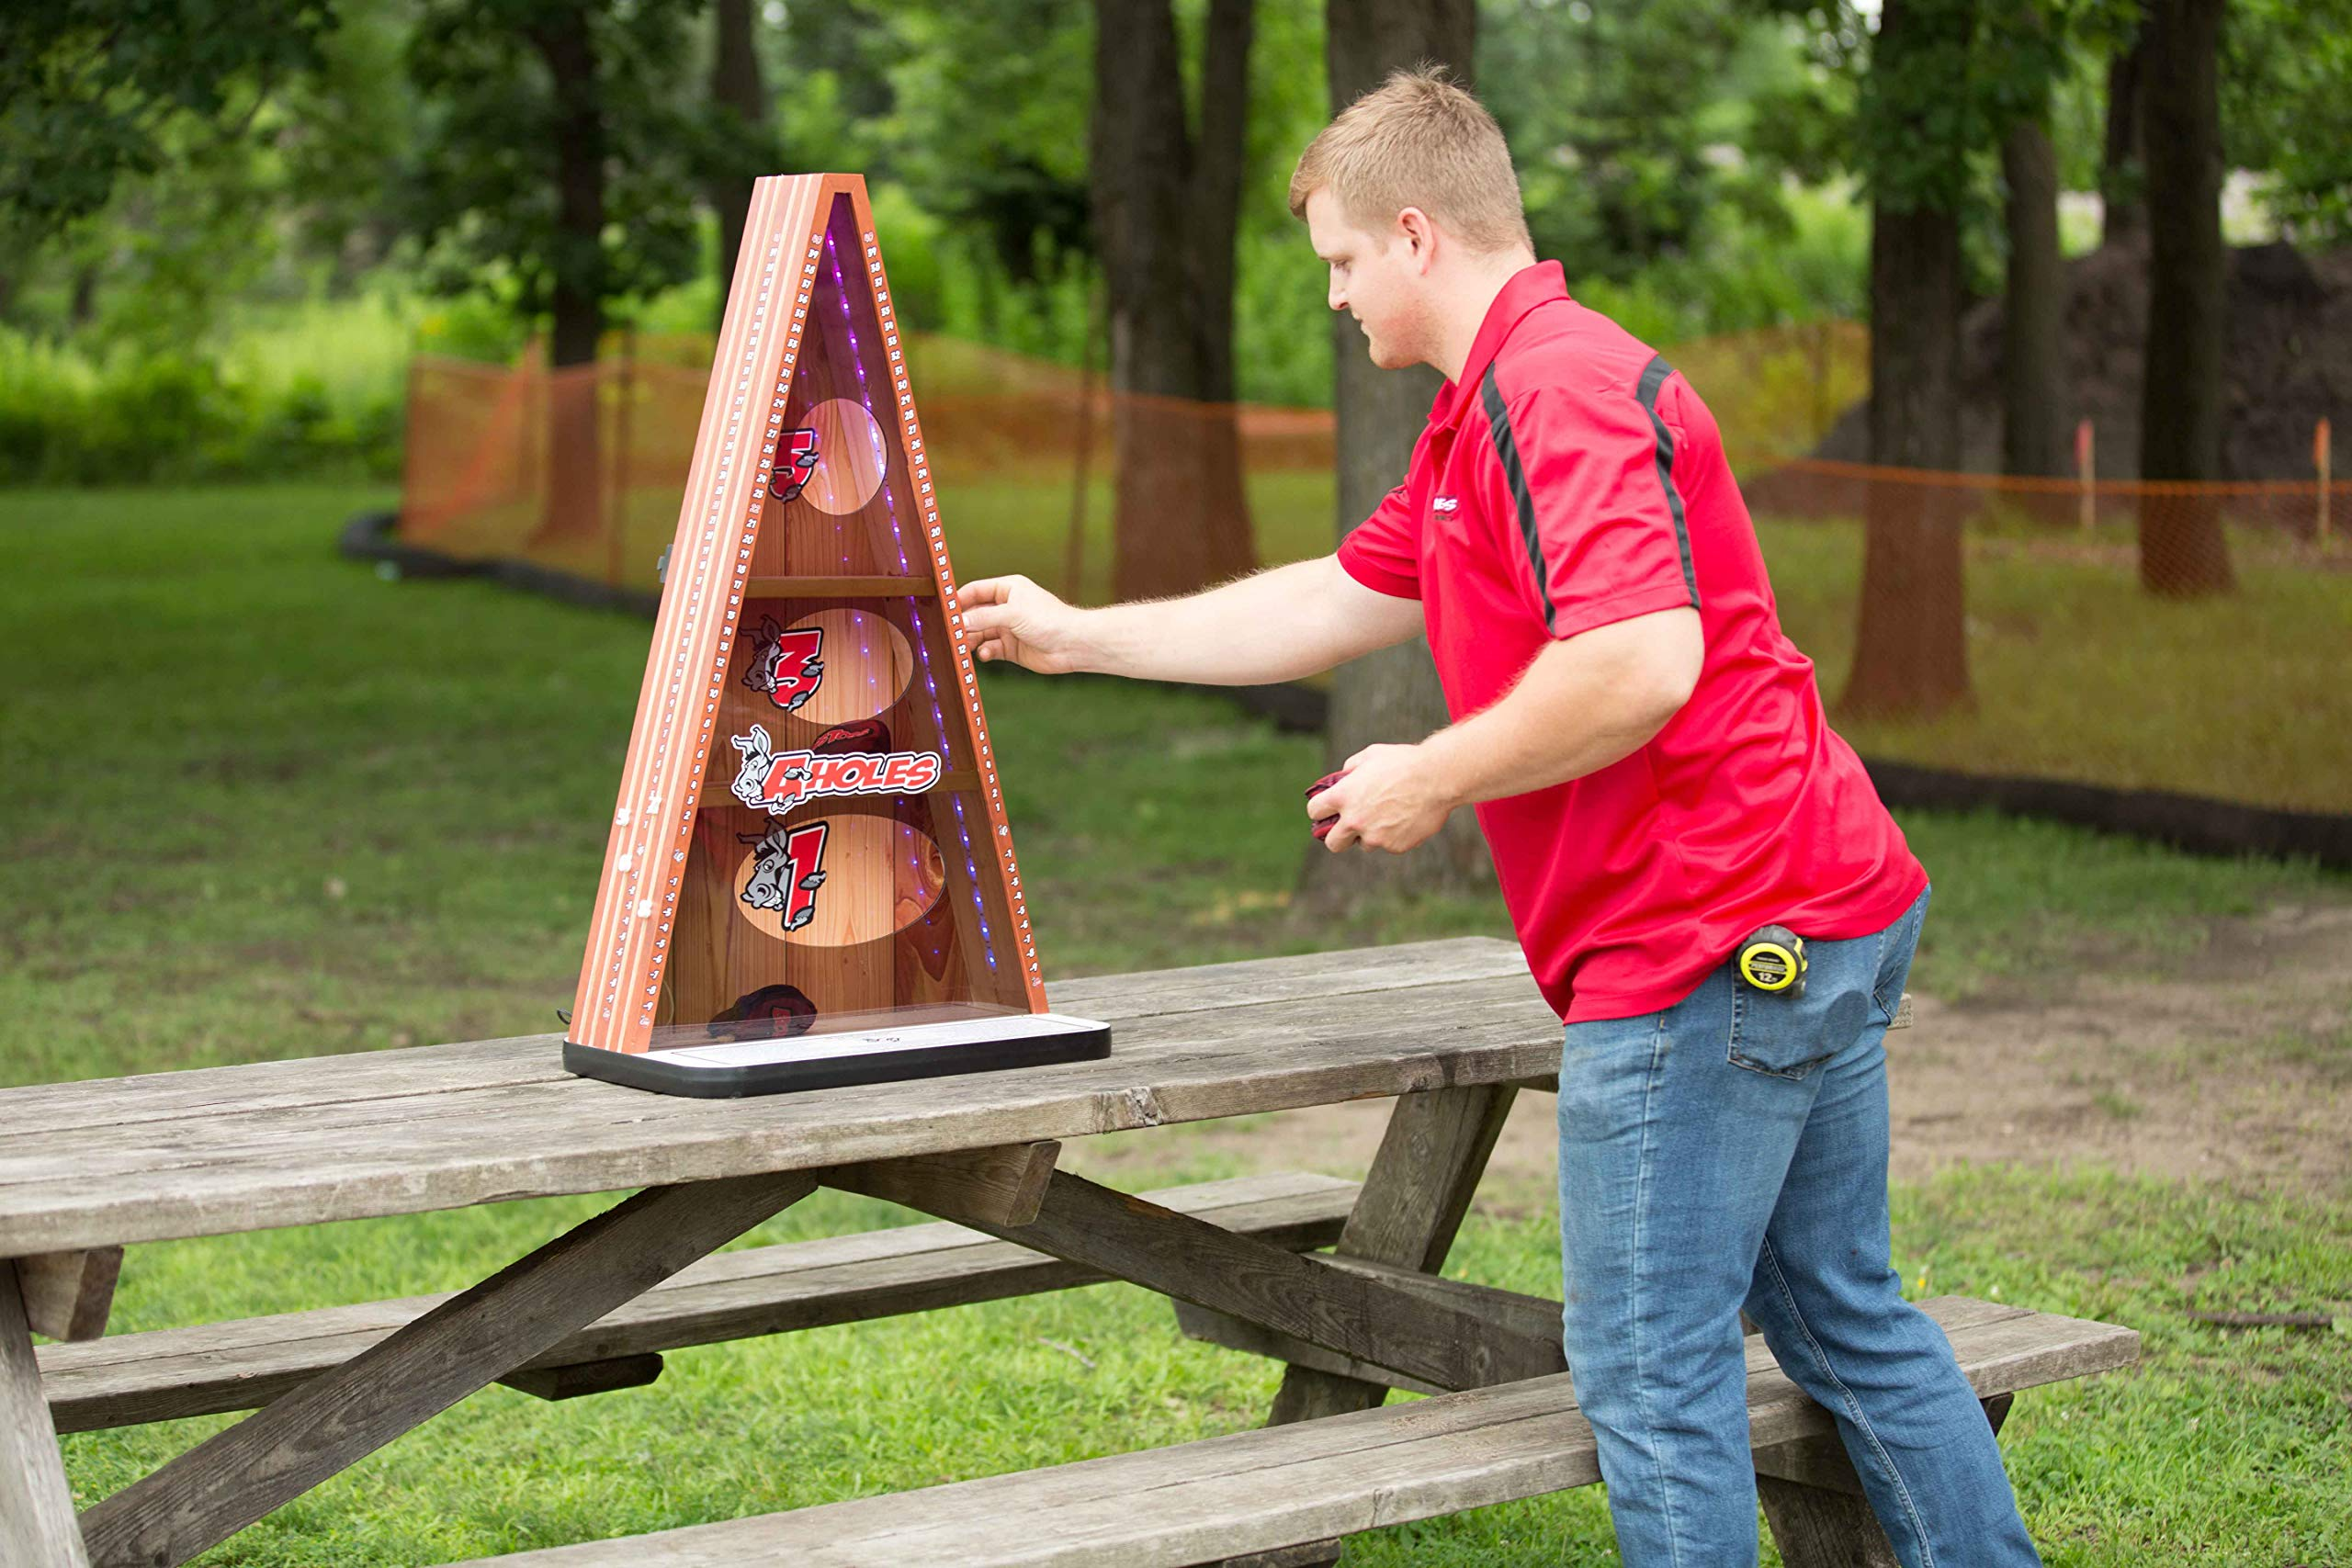 A-Holes Bean Bag Toss Game by Gronomics